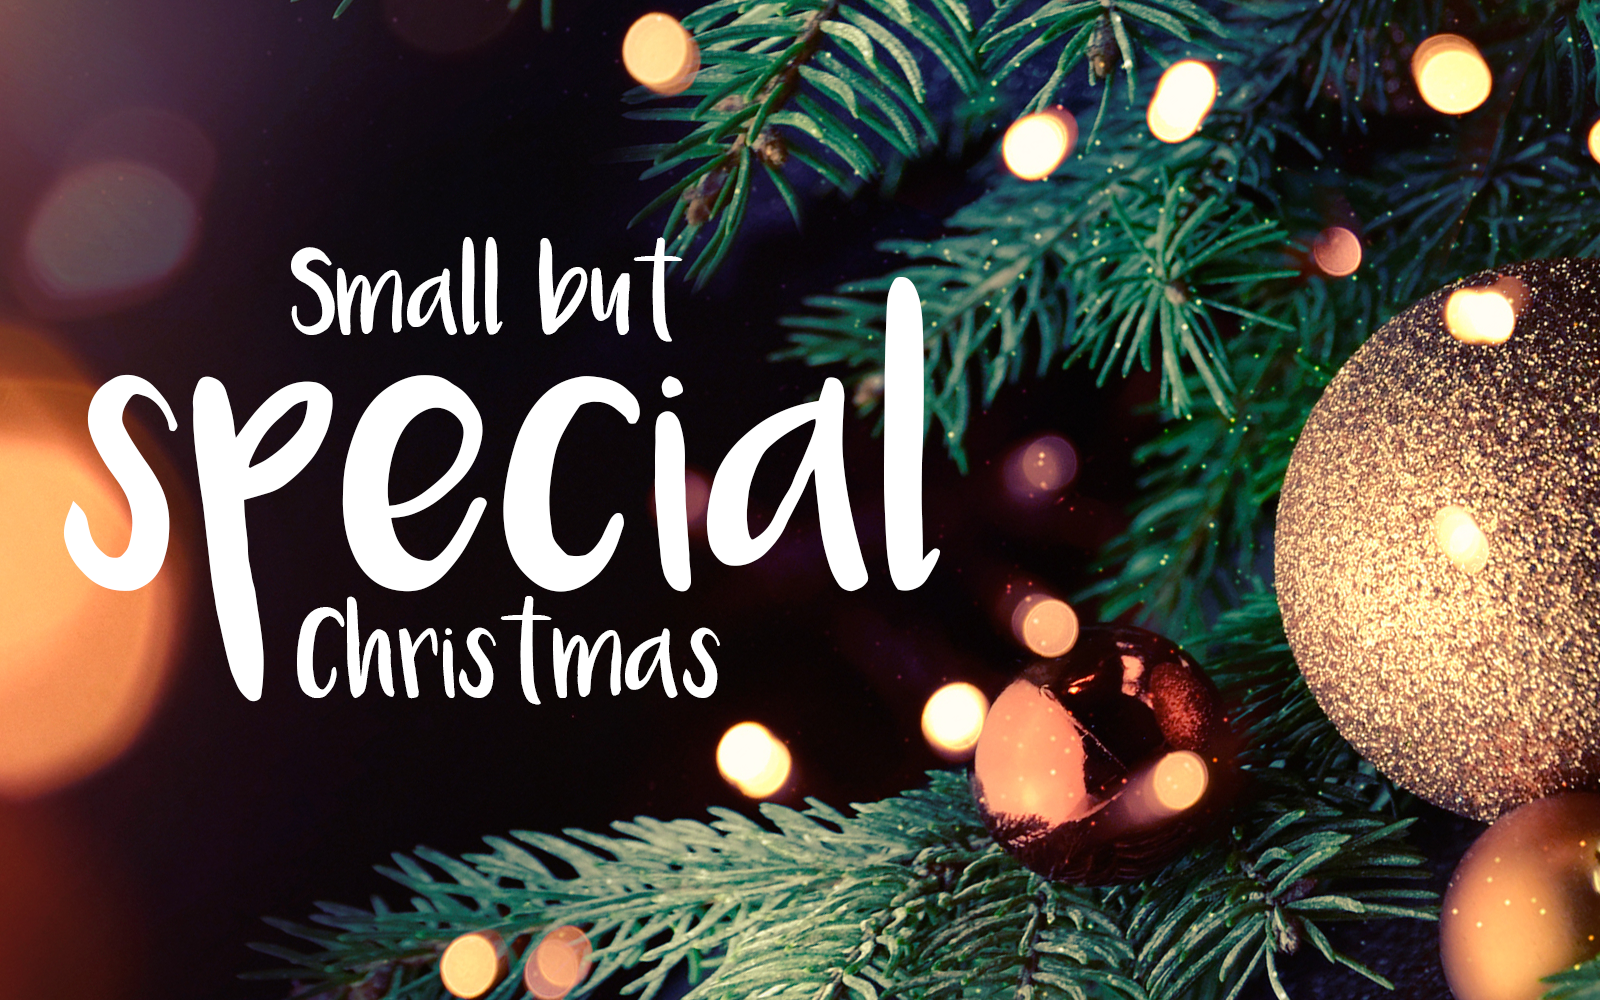 Have yourself a small but special Christmas